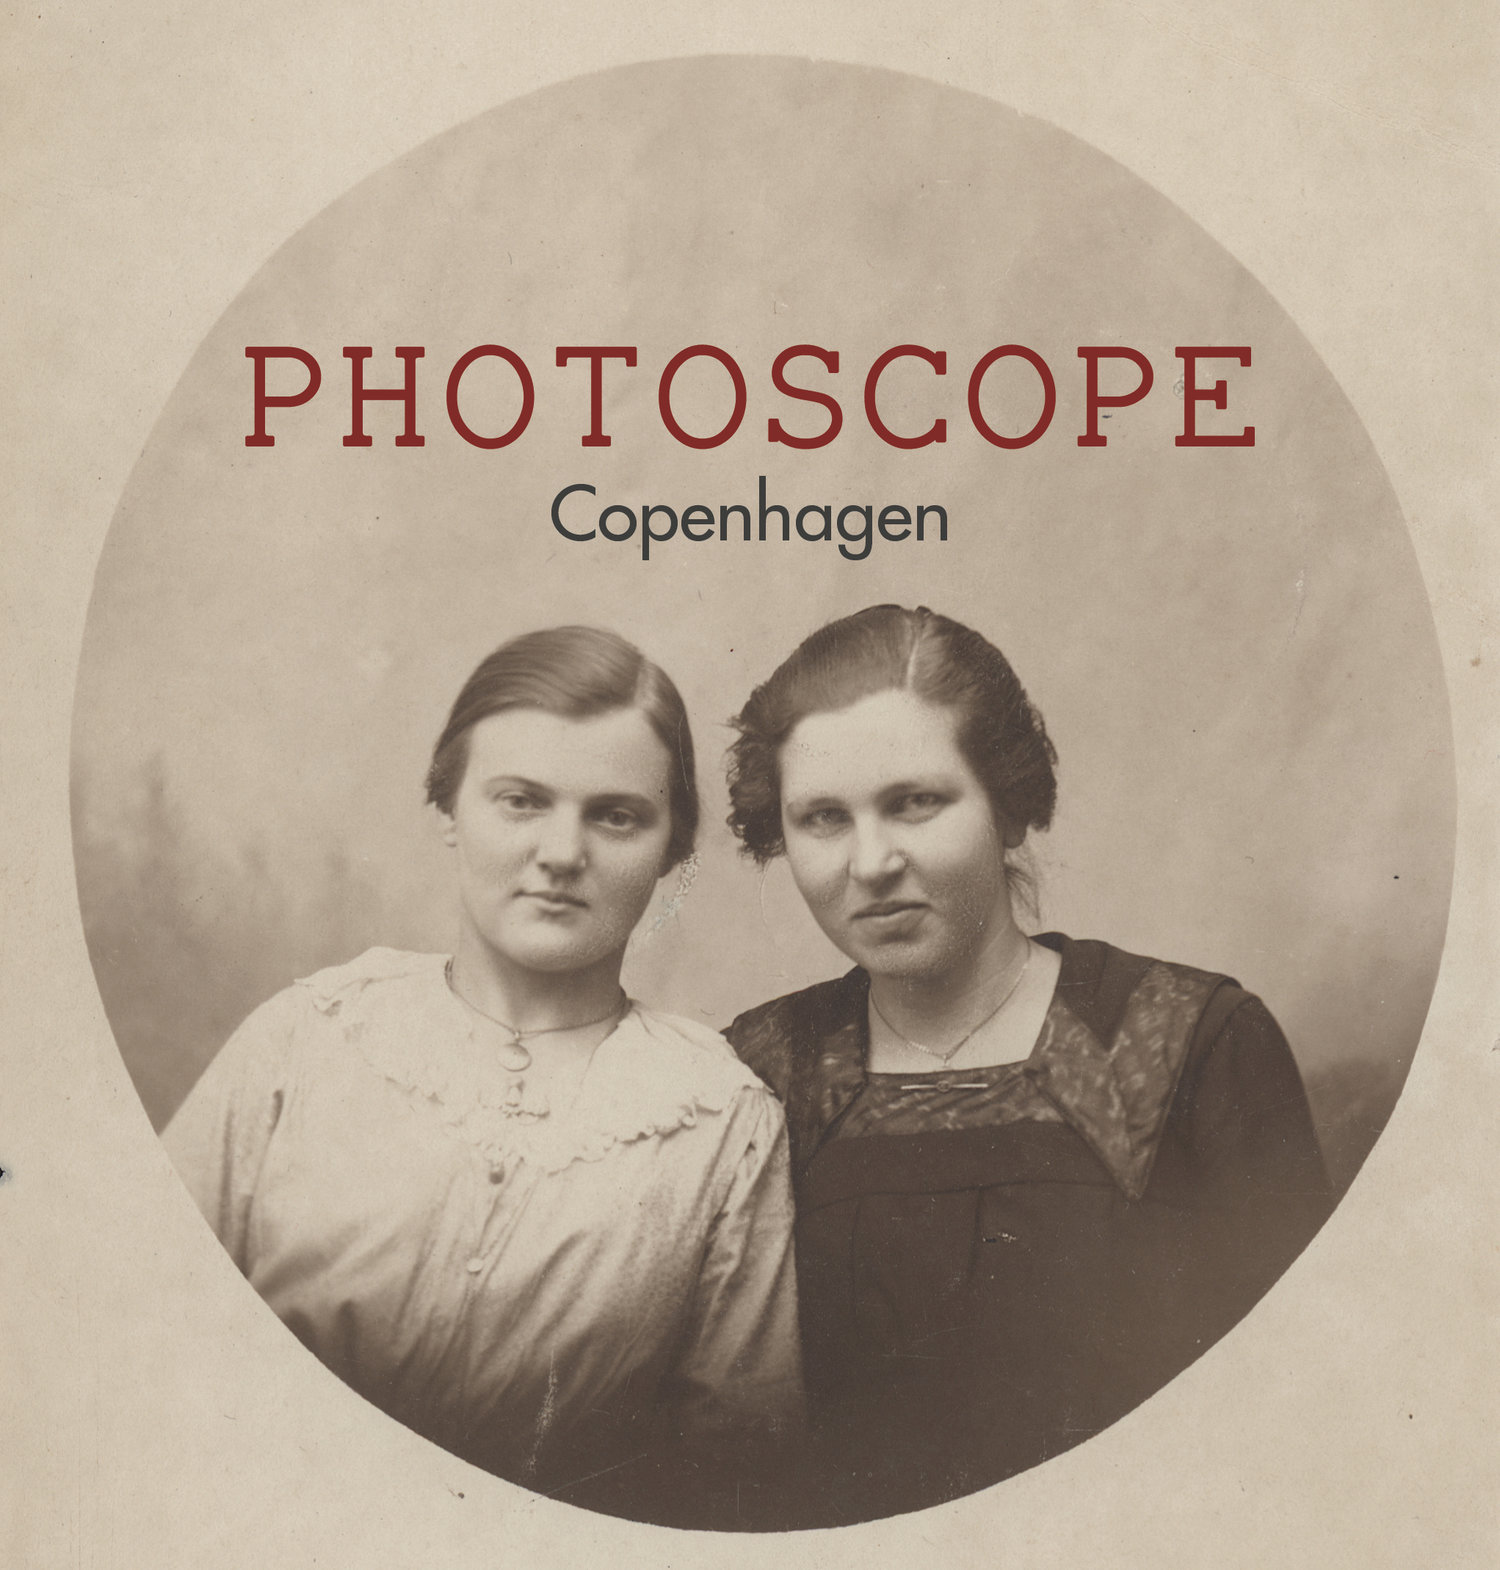 PHOTOSCOPE Workshop & Gallery